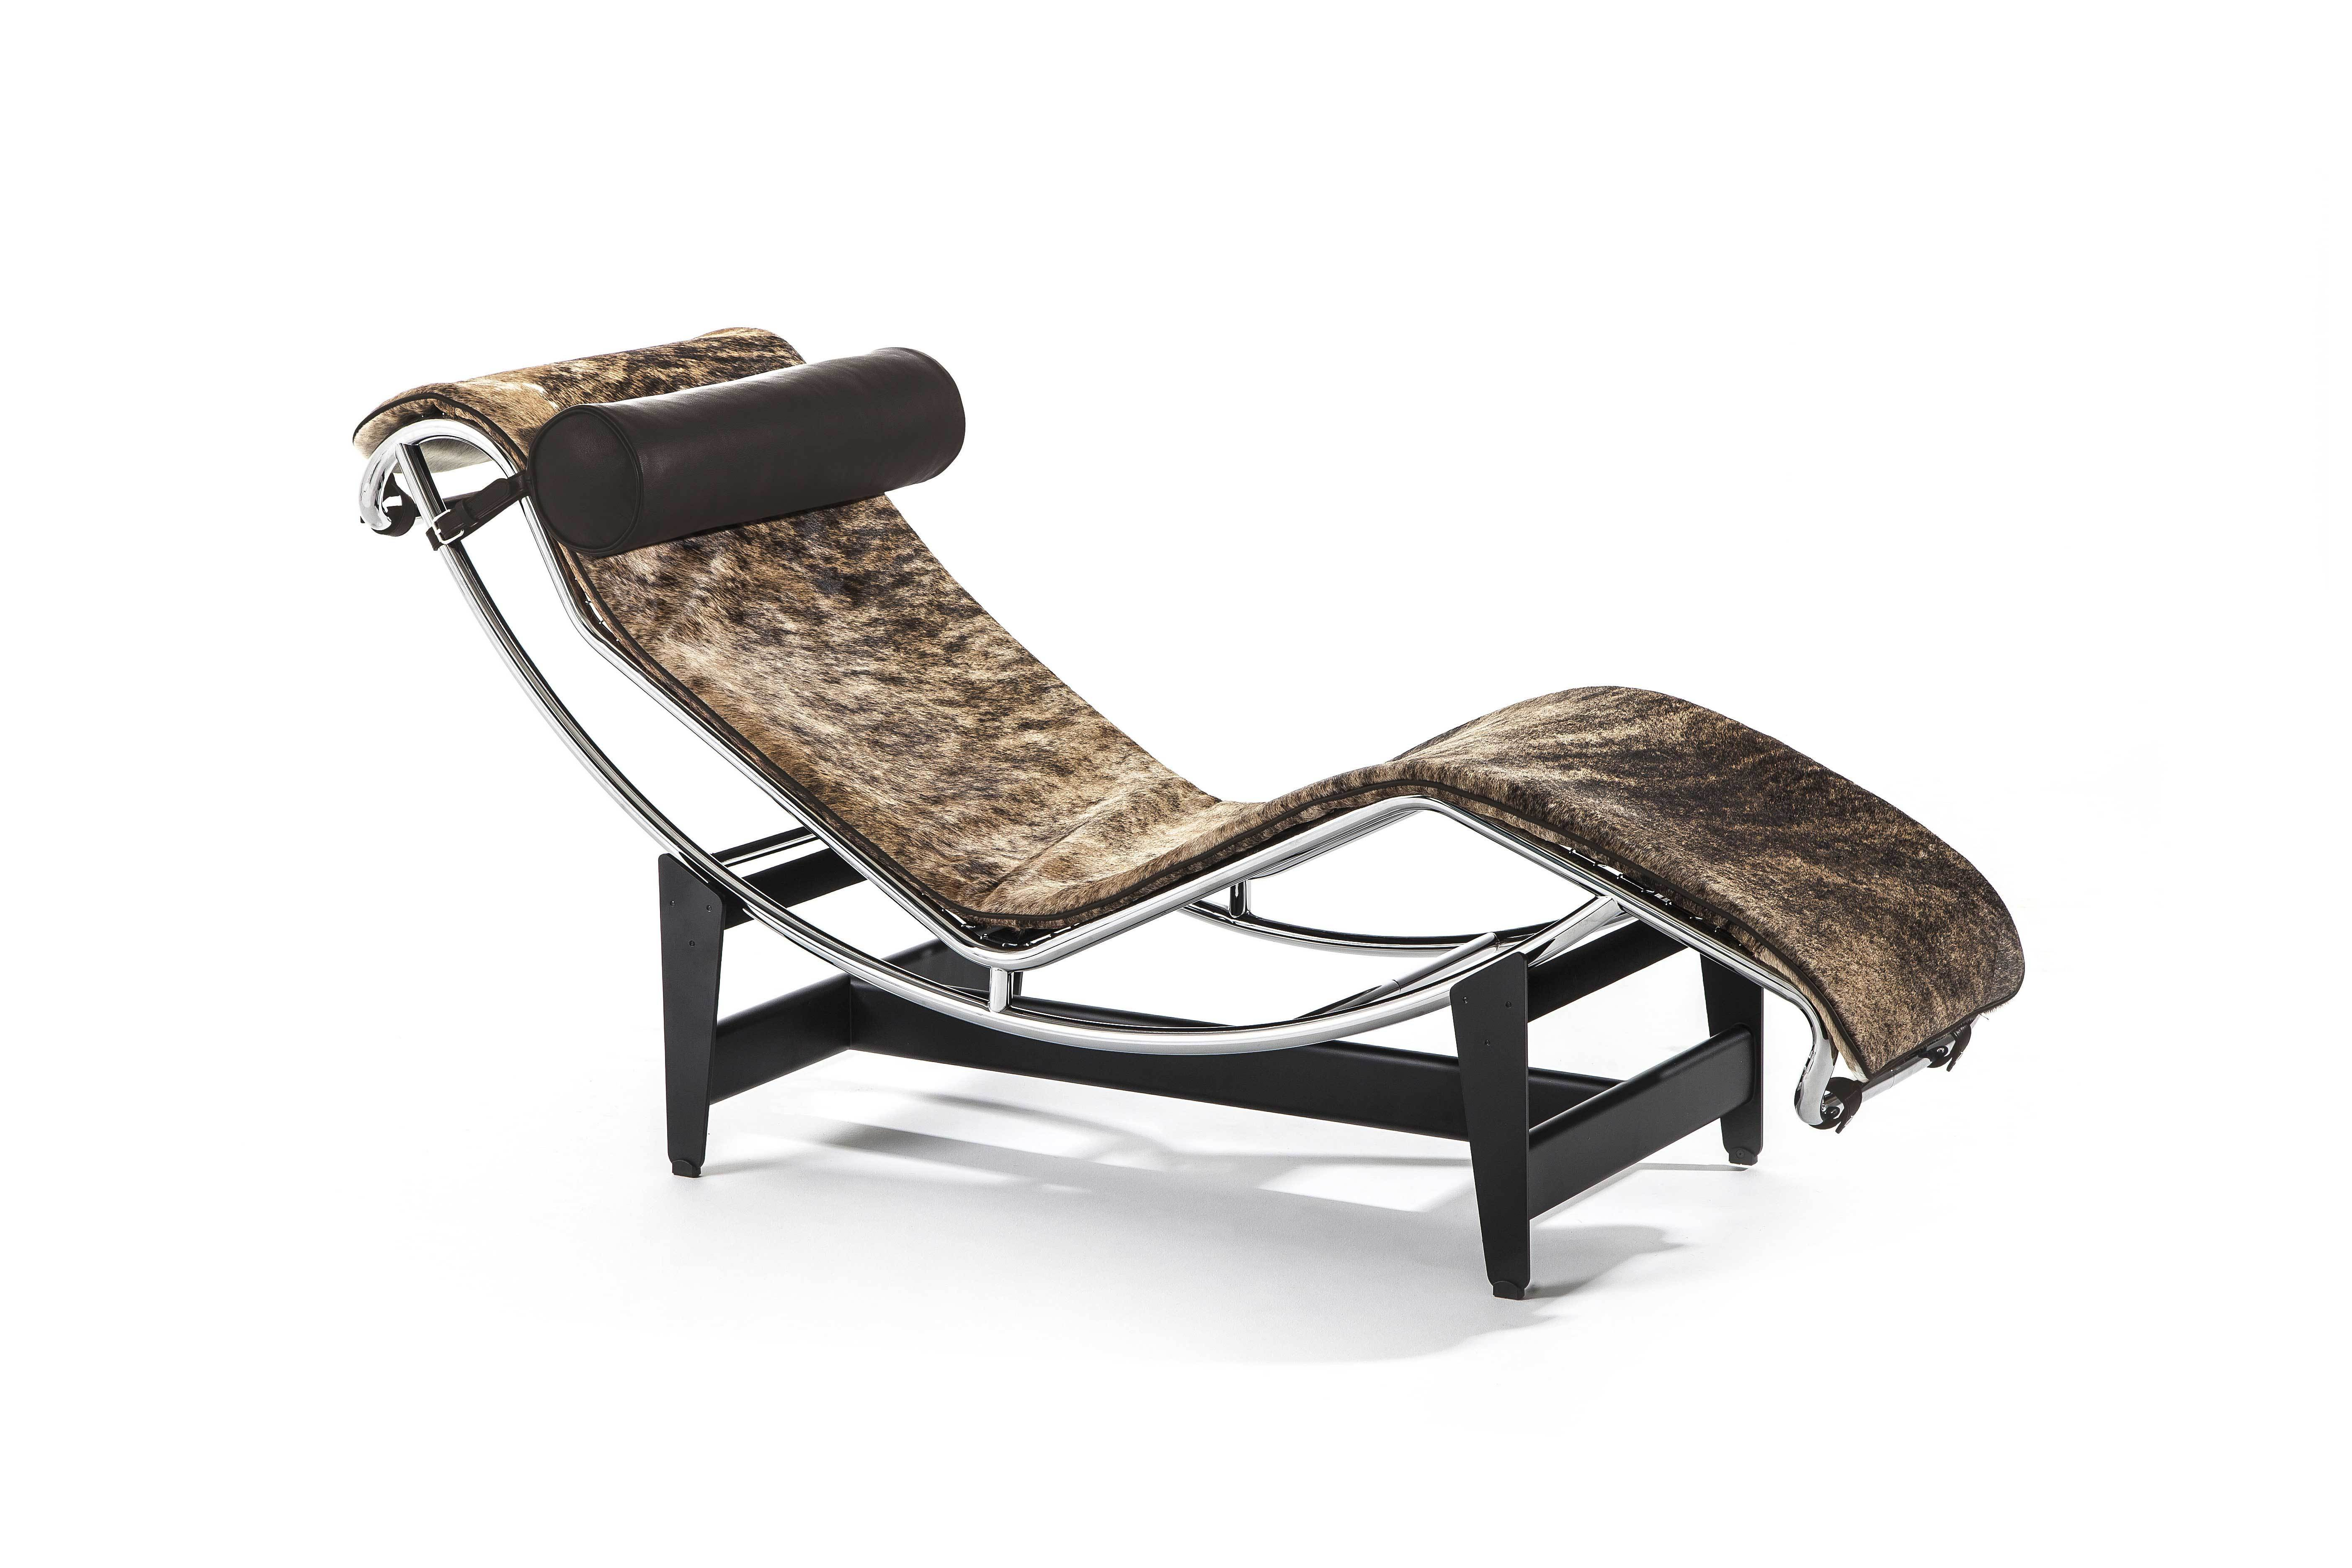 LC4 by Cina | STYLEPARK Corbusier Chaise Longue Original on chaise recliner chair, chaise furniture, chaise sofa sleeper,